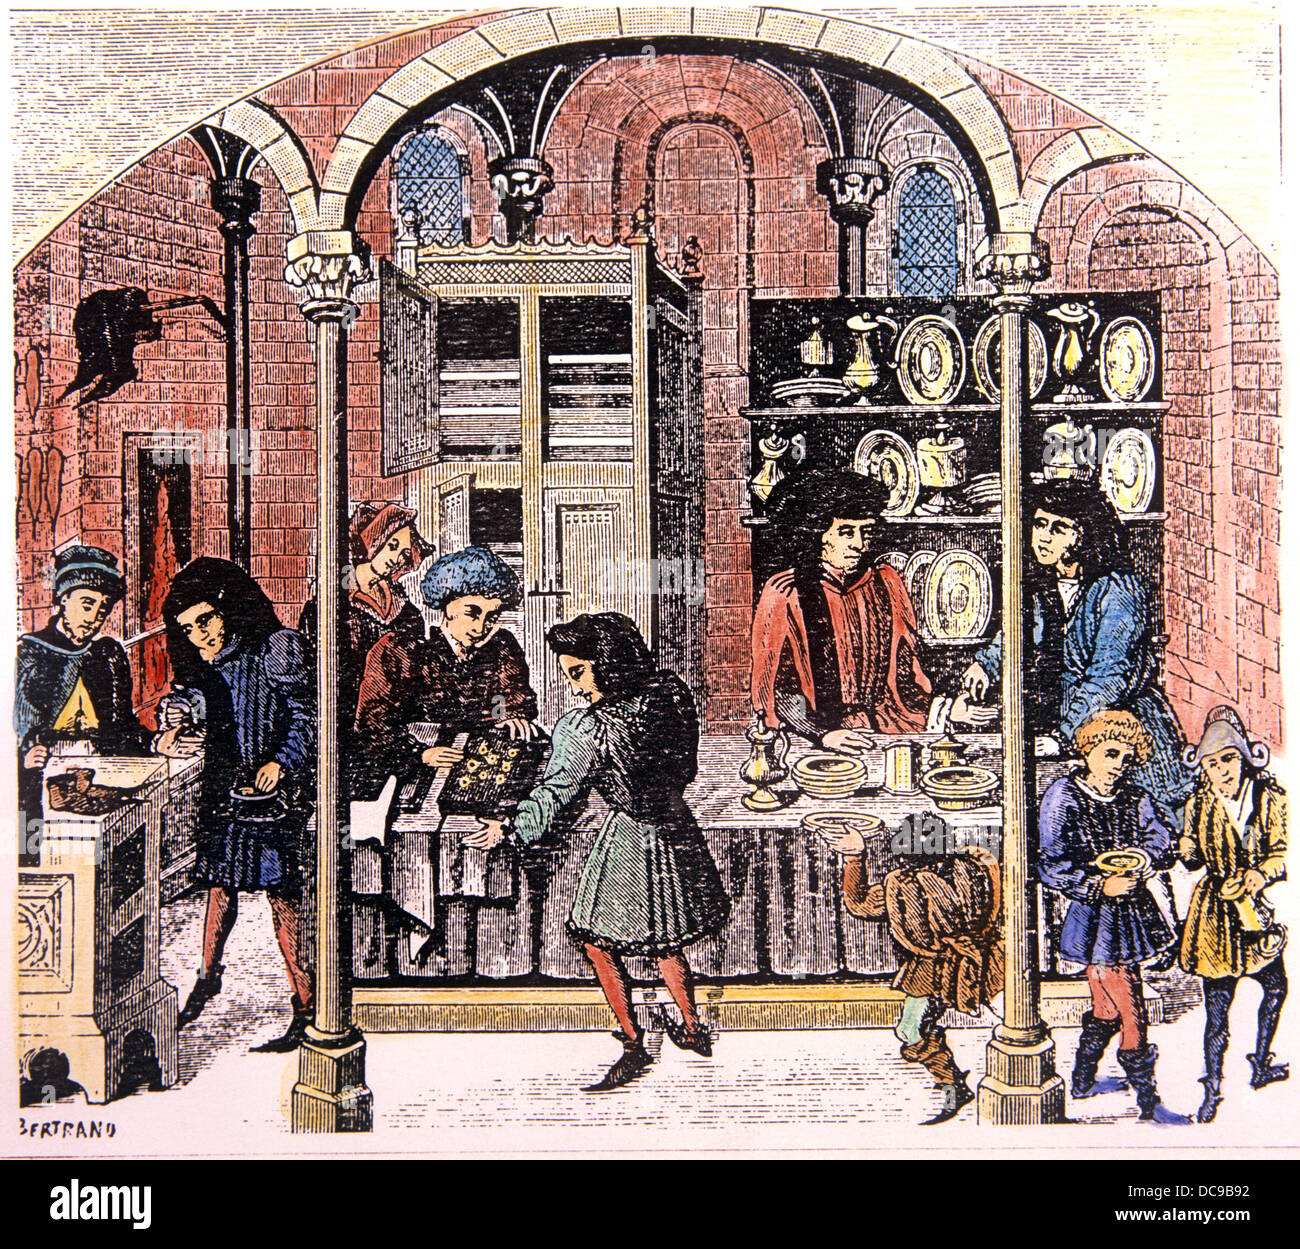 Medieval period. Covered market. Goldsmith. Dealer. Shoemaker. Cloth merchant. shops. 15th century. - Stock Image